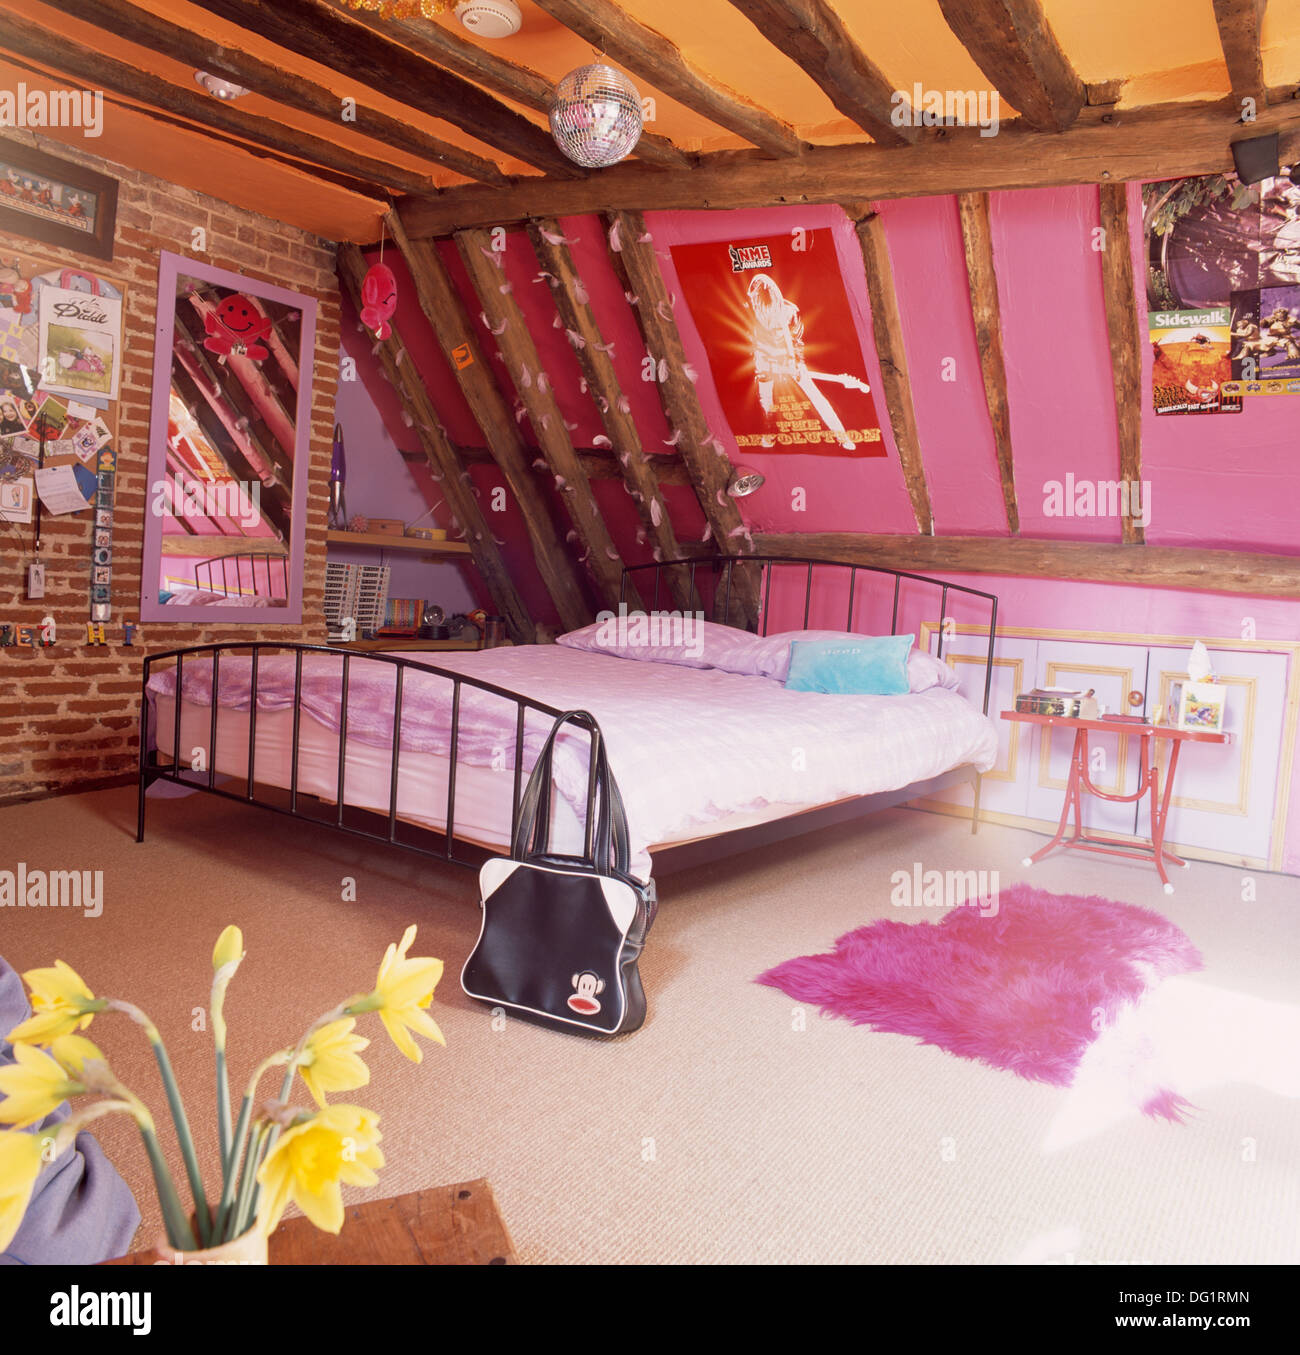 Faux Exposed Brick Mirror On Exposed Brick Wall Beside Large Metal Bed In Dated Pink